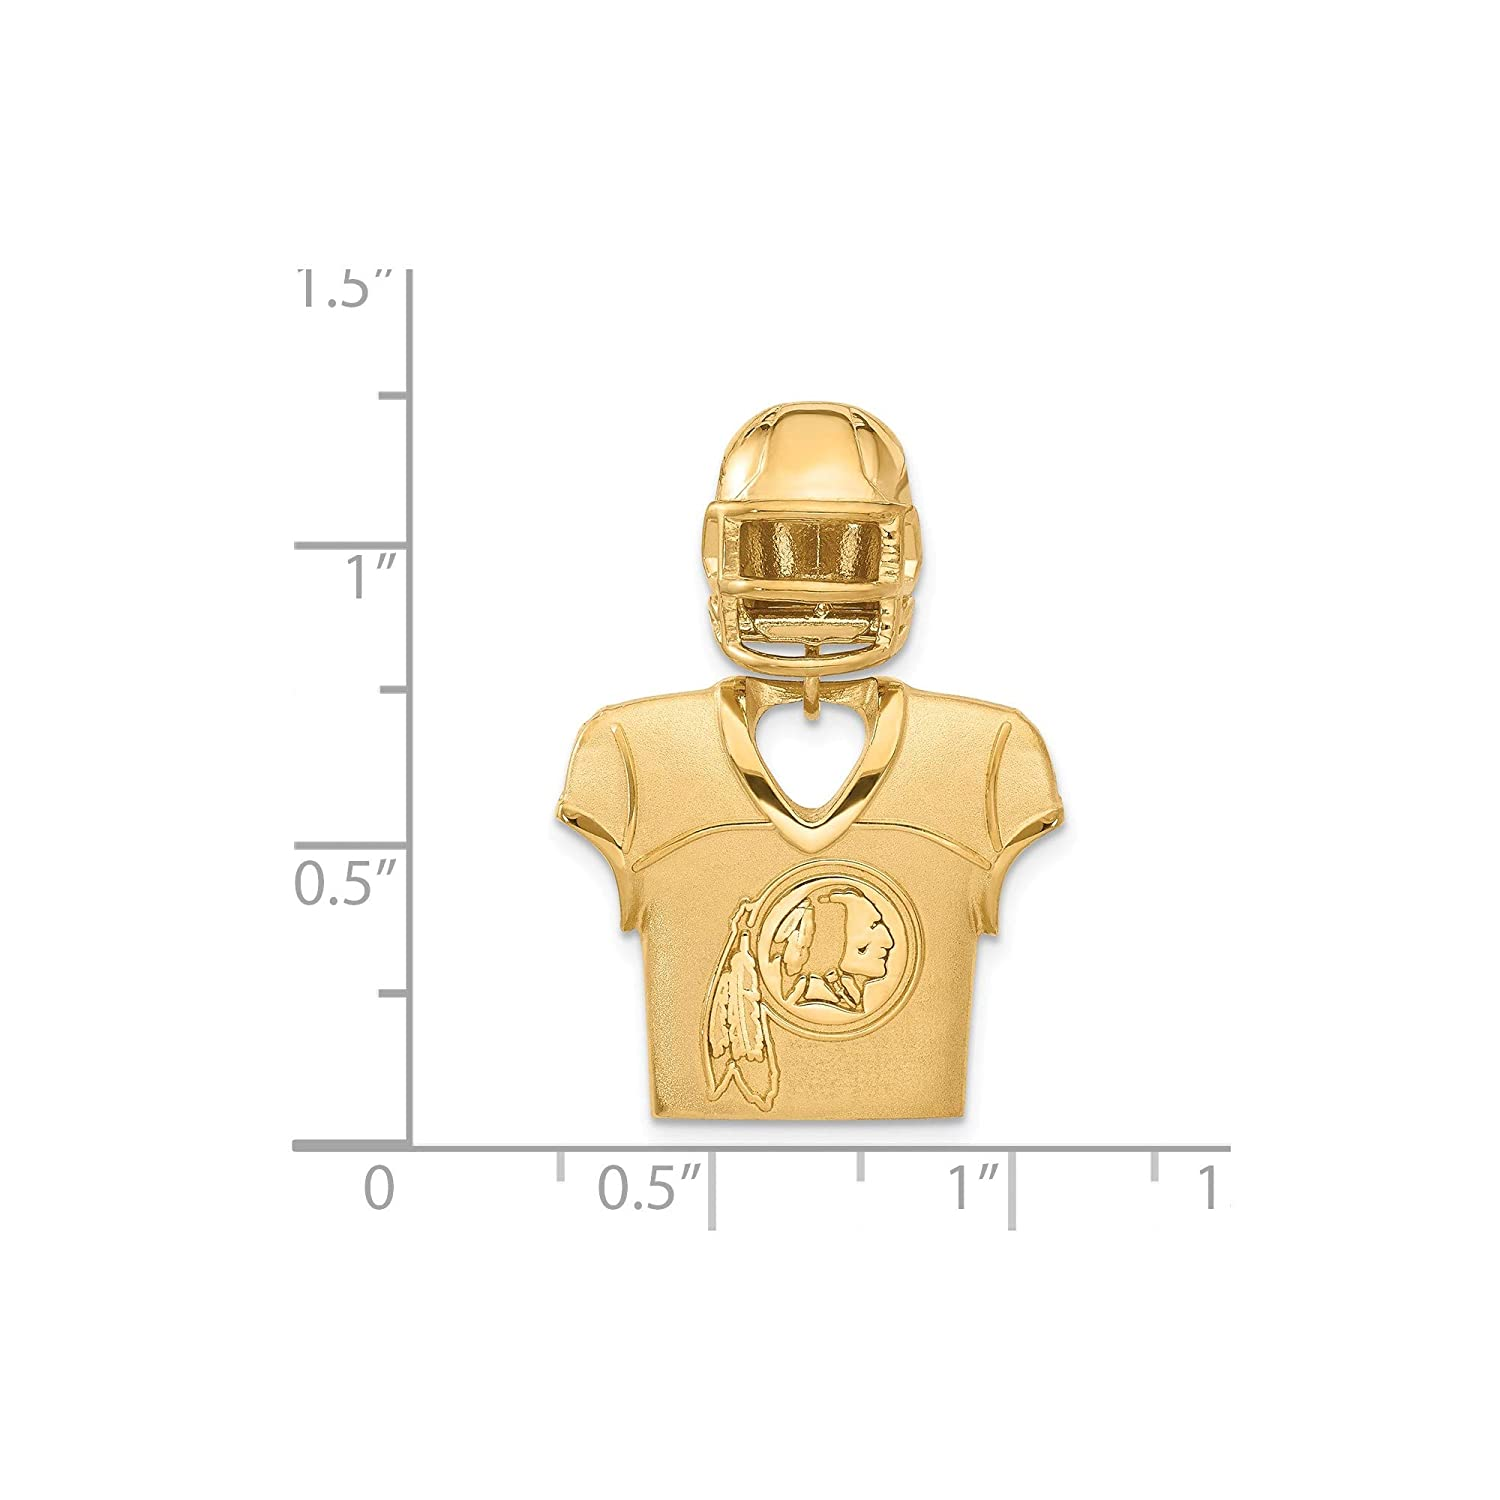 Kira Riley Gold Plated Washington Redskins Jersey /& Helmet Pendant for Chains and Necklaces